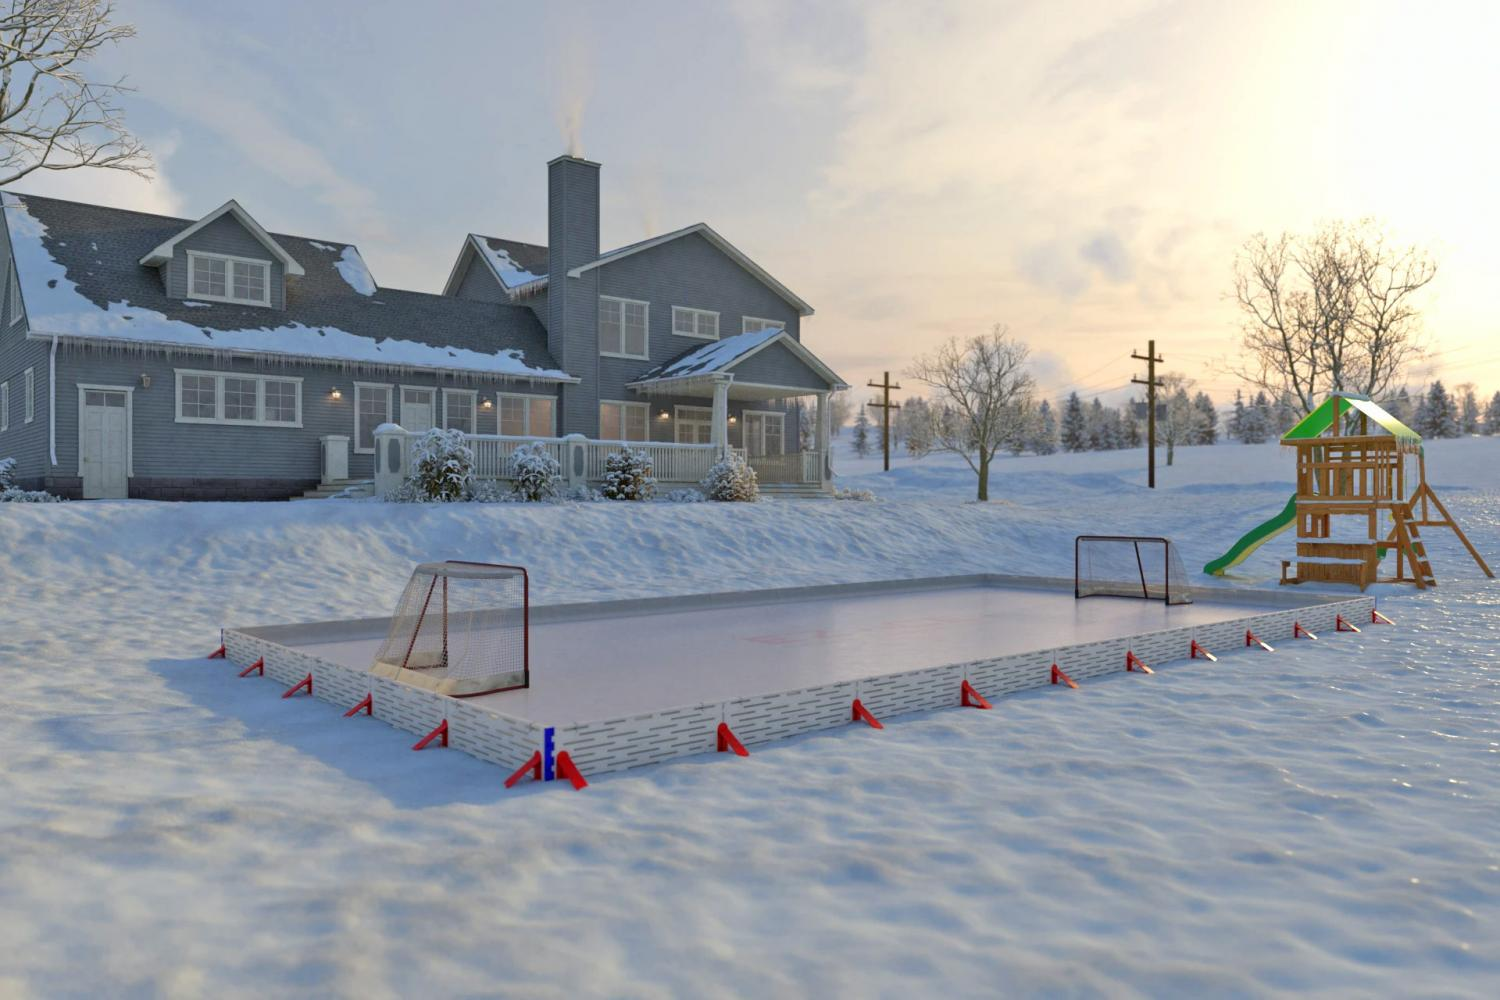 EZ Ice Rink - DIY Backyard Ice Rink That Sets Up in 1 Hour